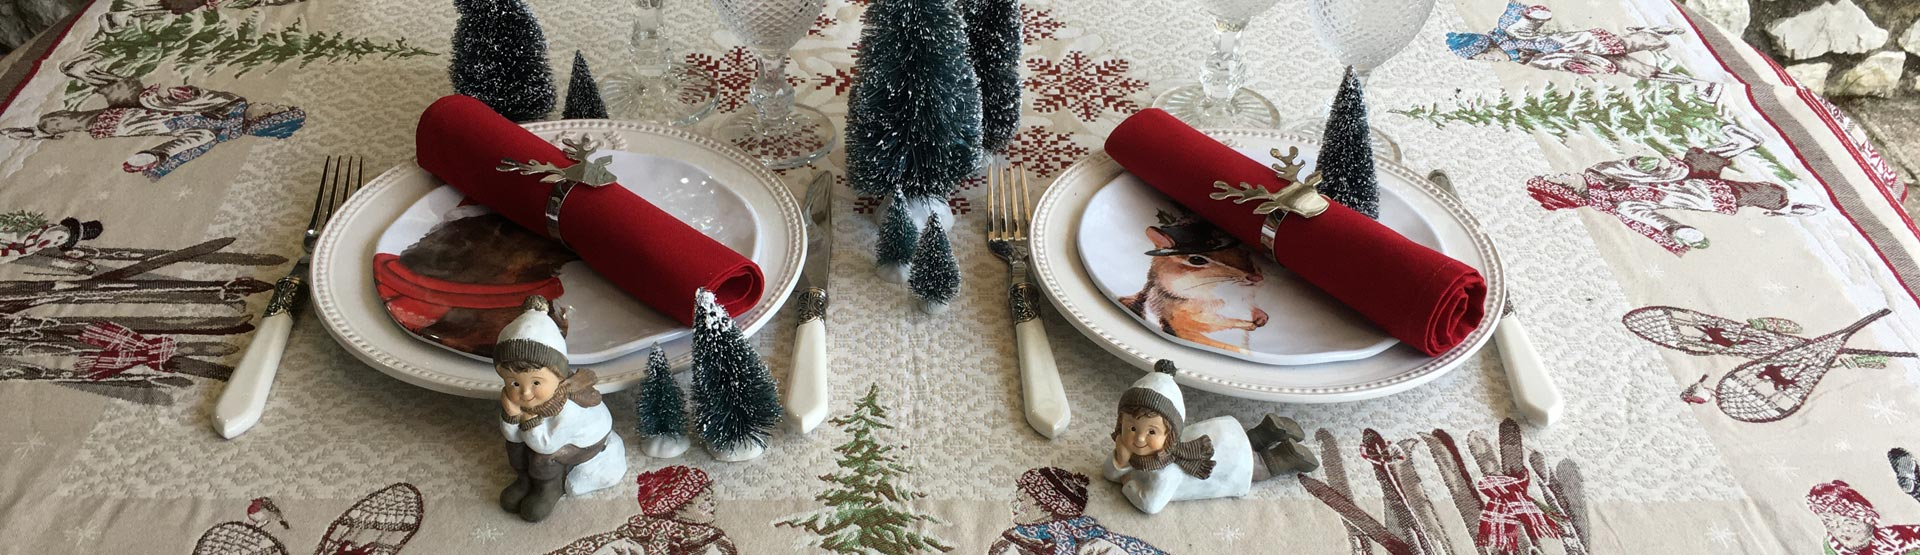 Mountain and winter house linens